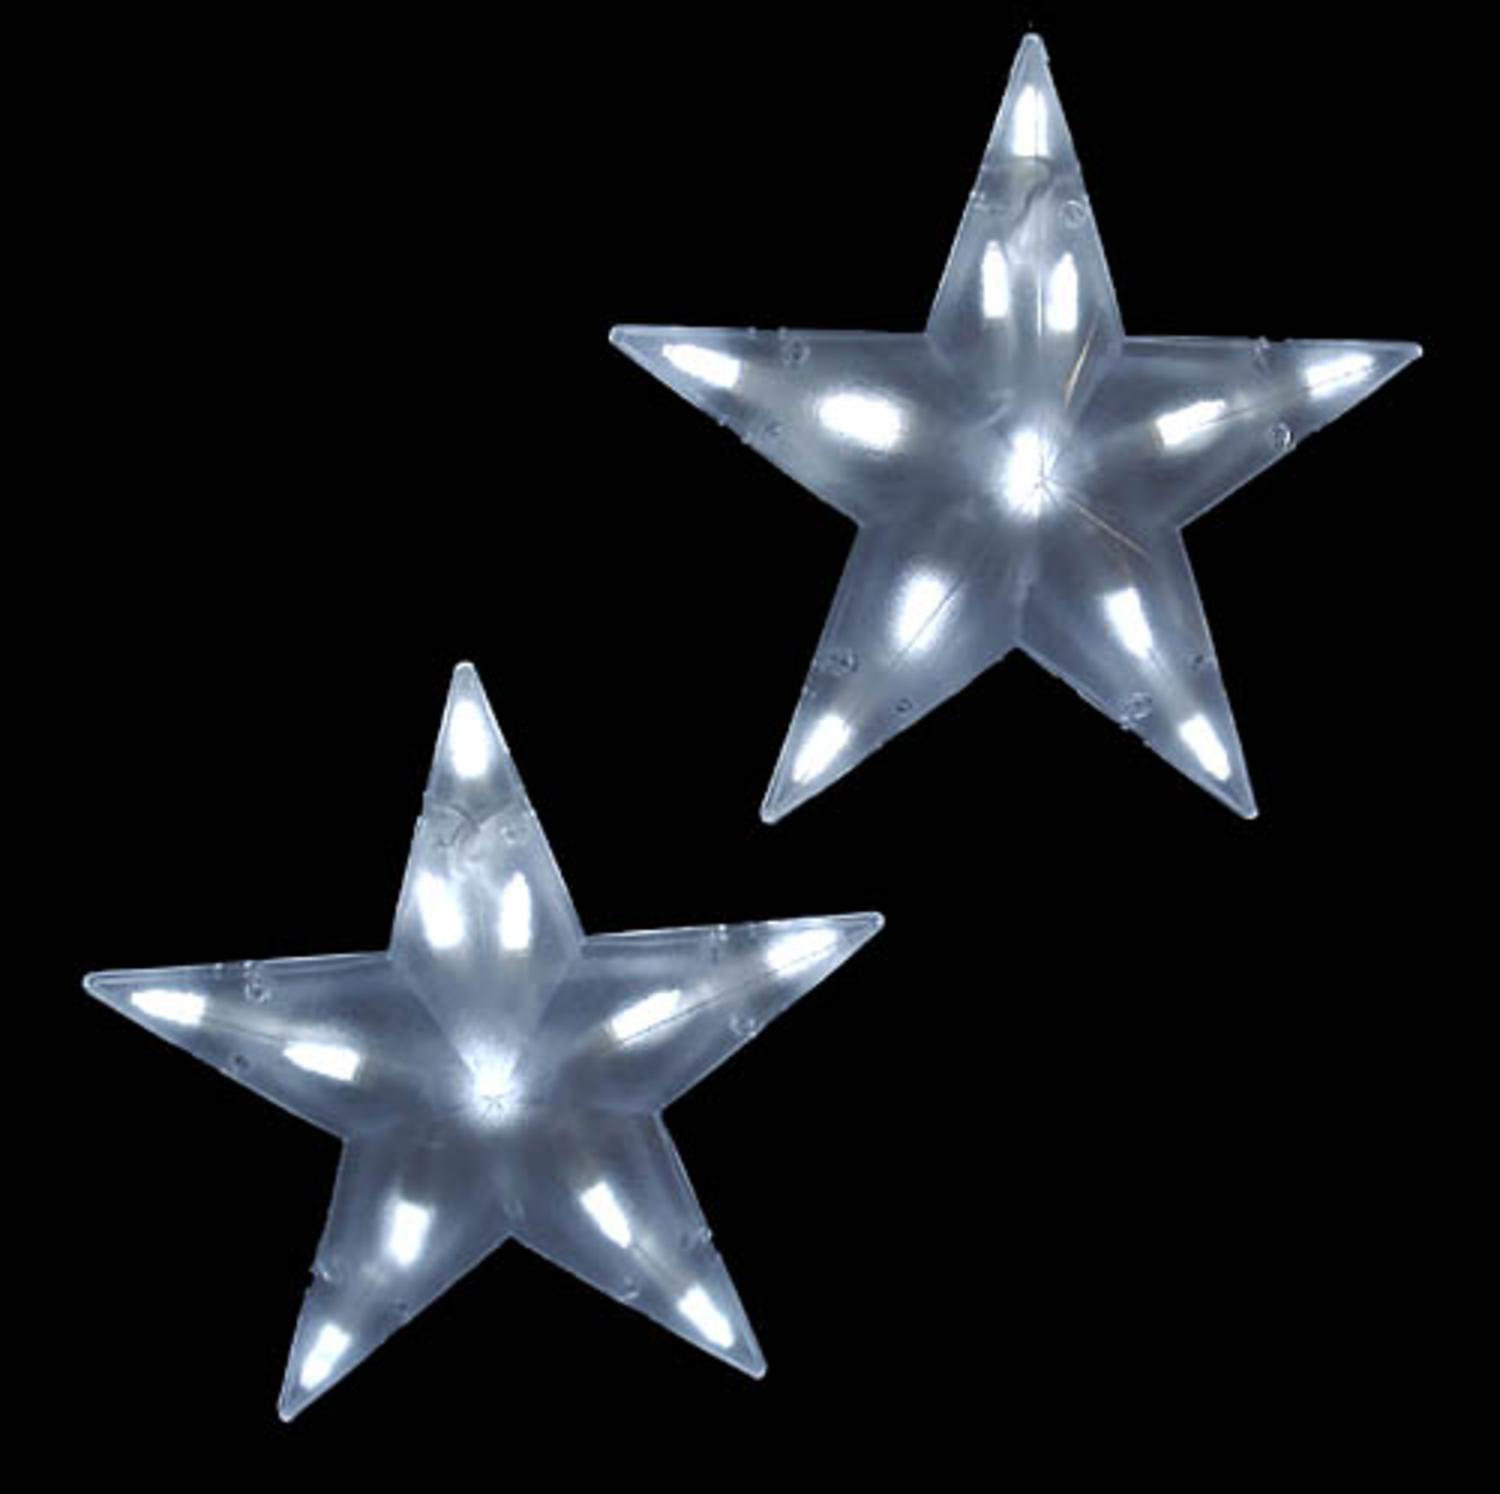 Set of 3 Pure White Frosted LED 3-D Star Icicle Christmas Lights - White Wire